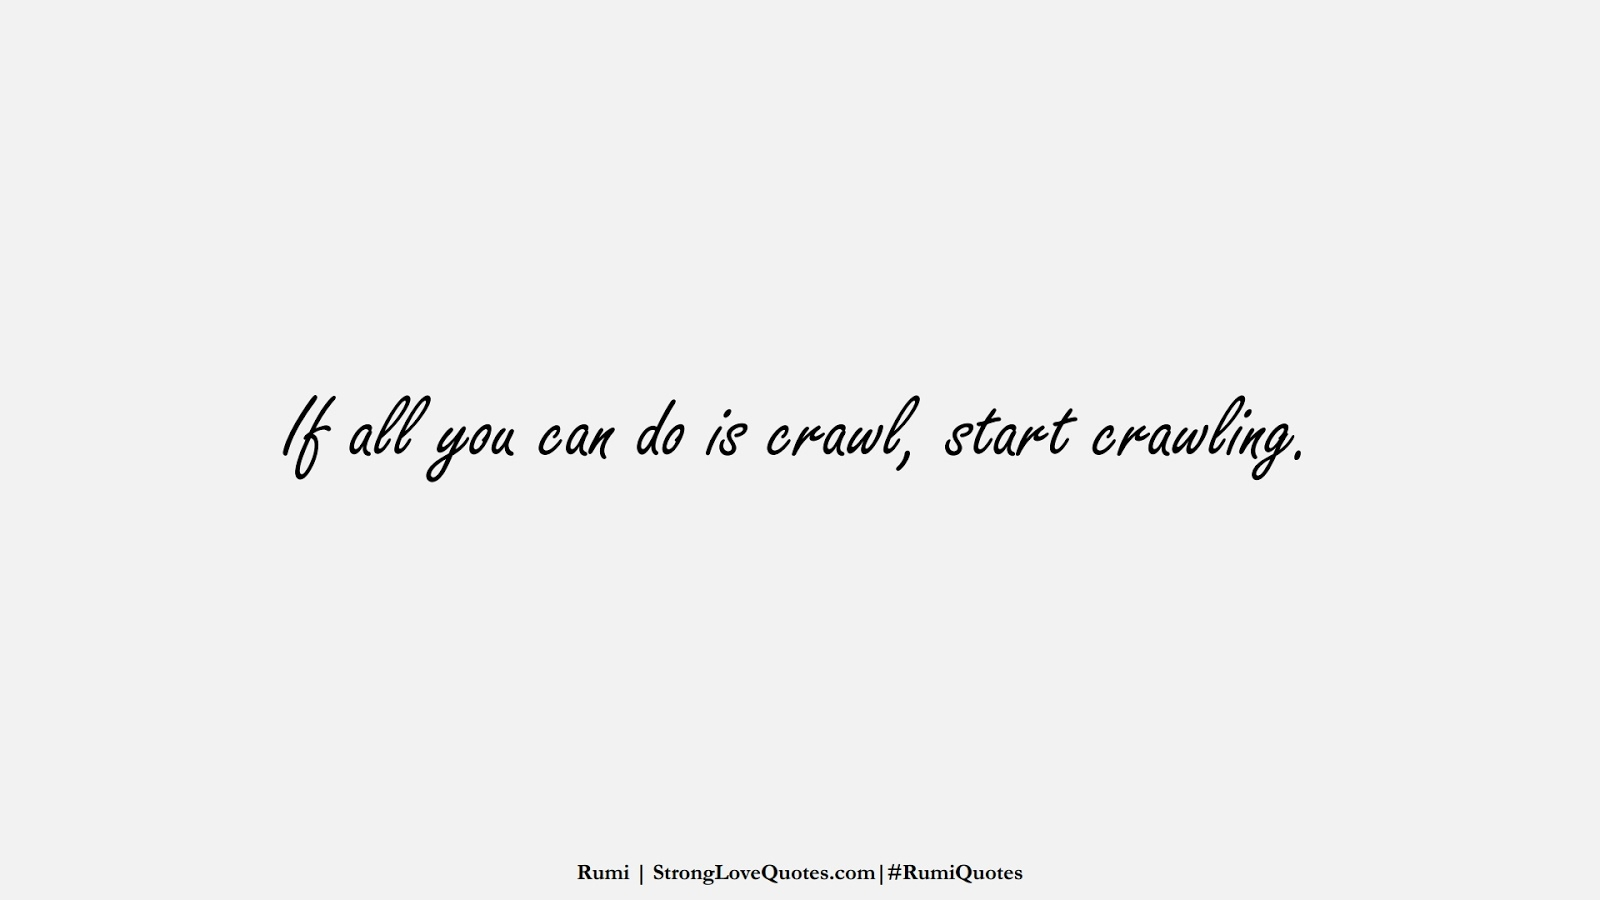 If all you can do is crawl, start crawling. (Rumi);  #RumiQuotes